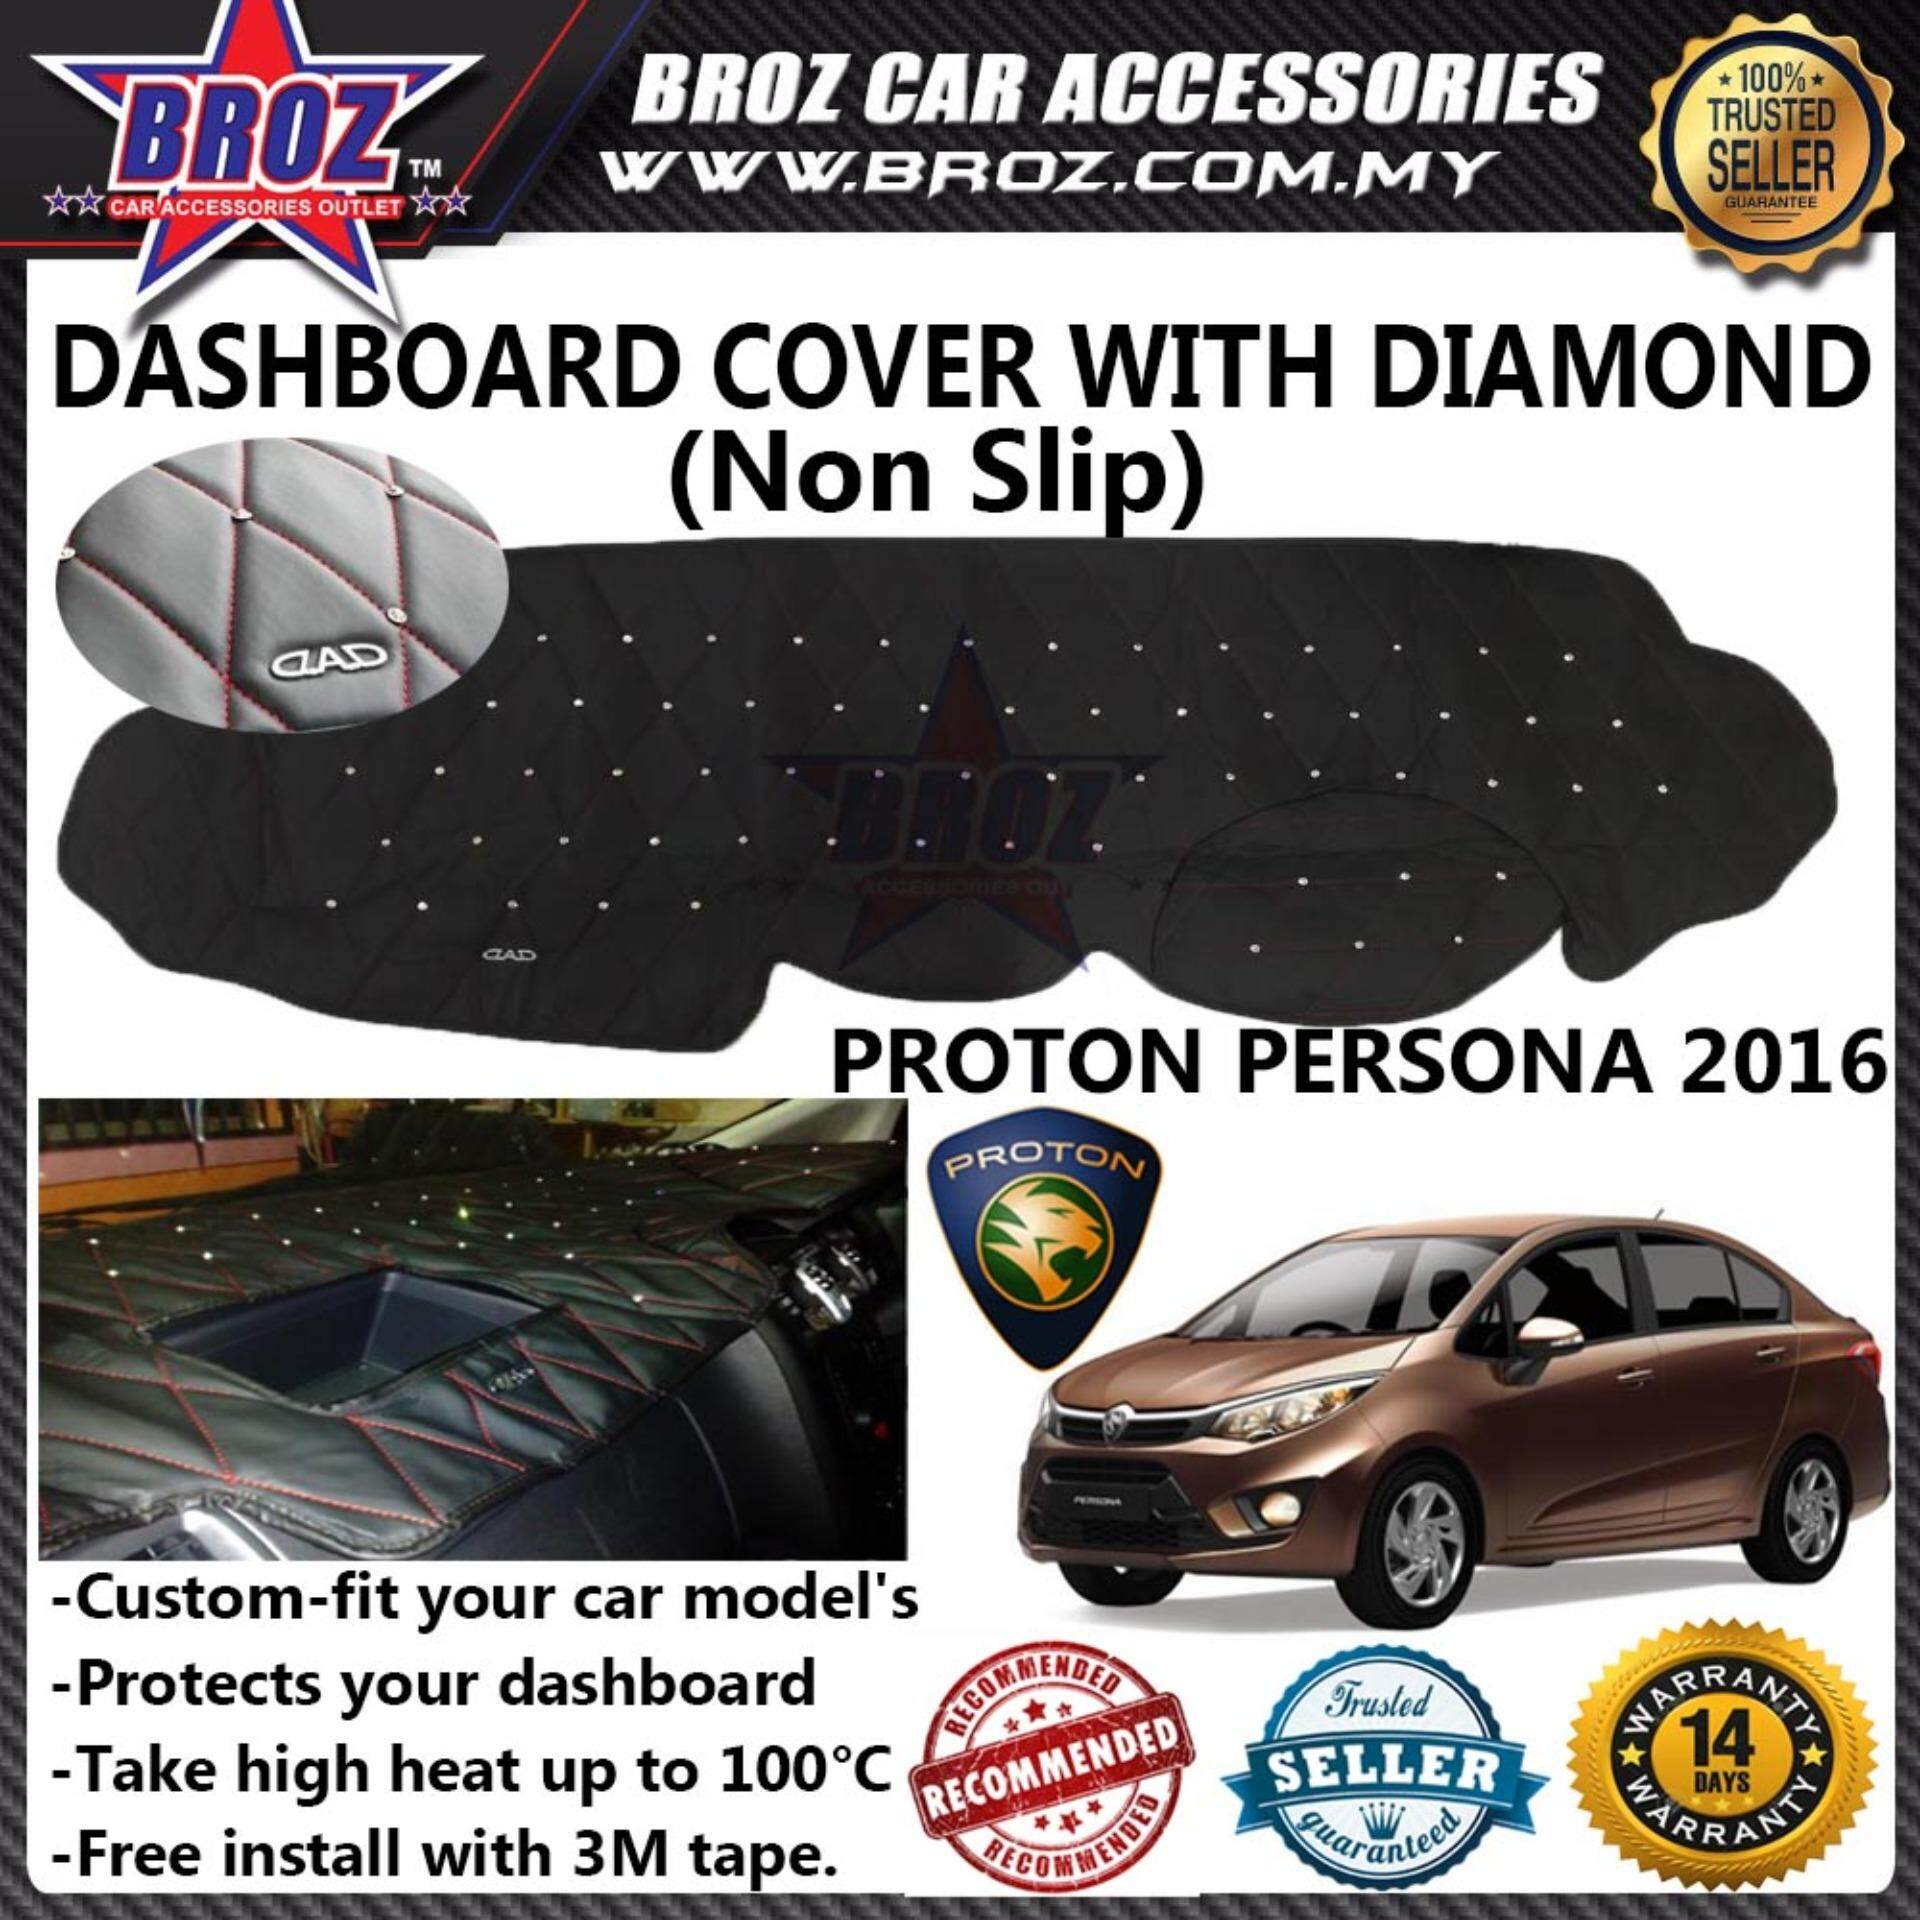 Broz Non Slip Dashboard Cover with diamond for Proton Persona 2016